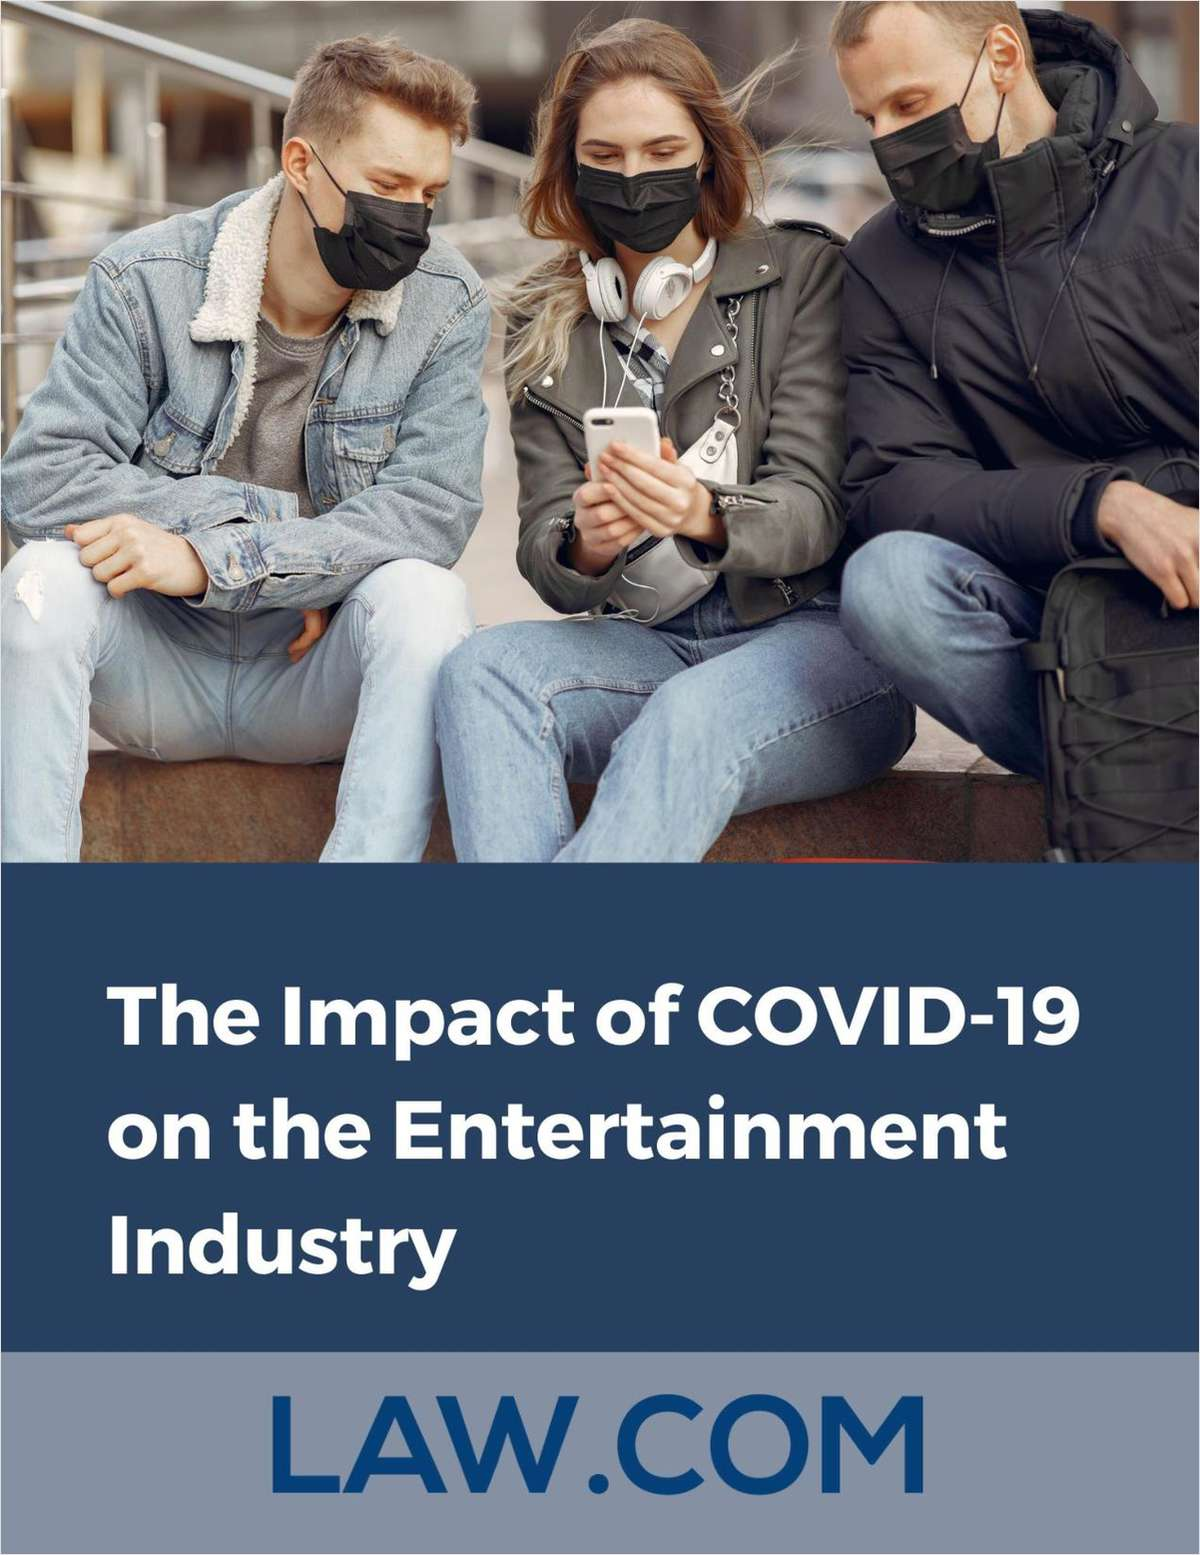 The Impact of COVID-19 on the Entertainment Industry